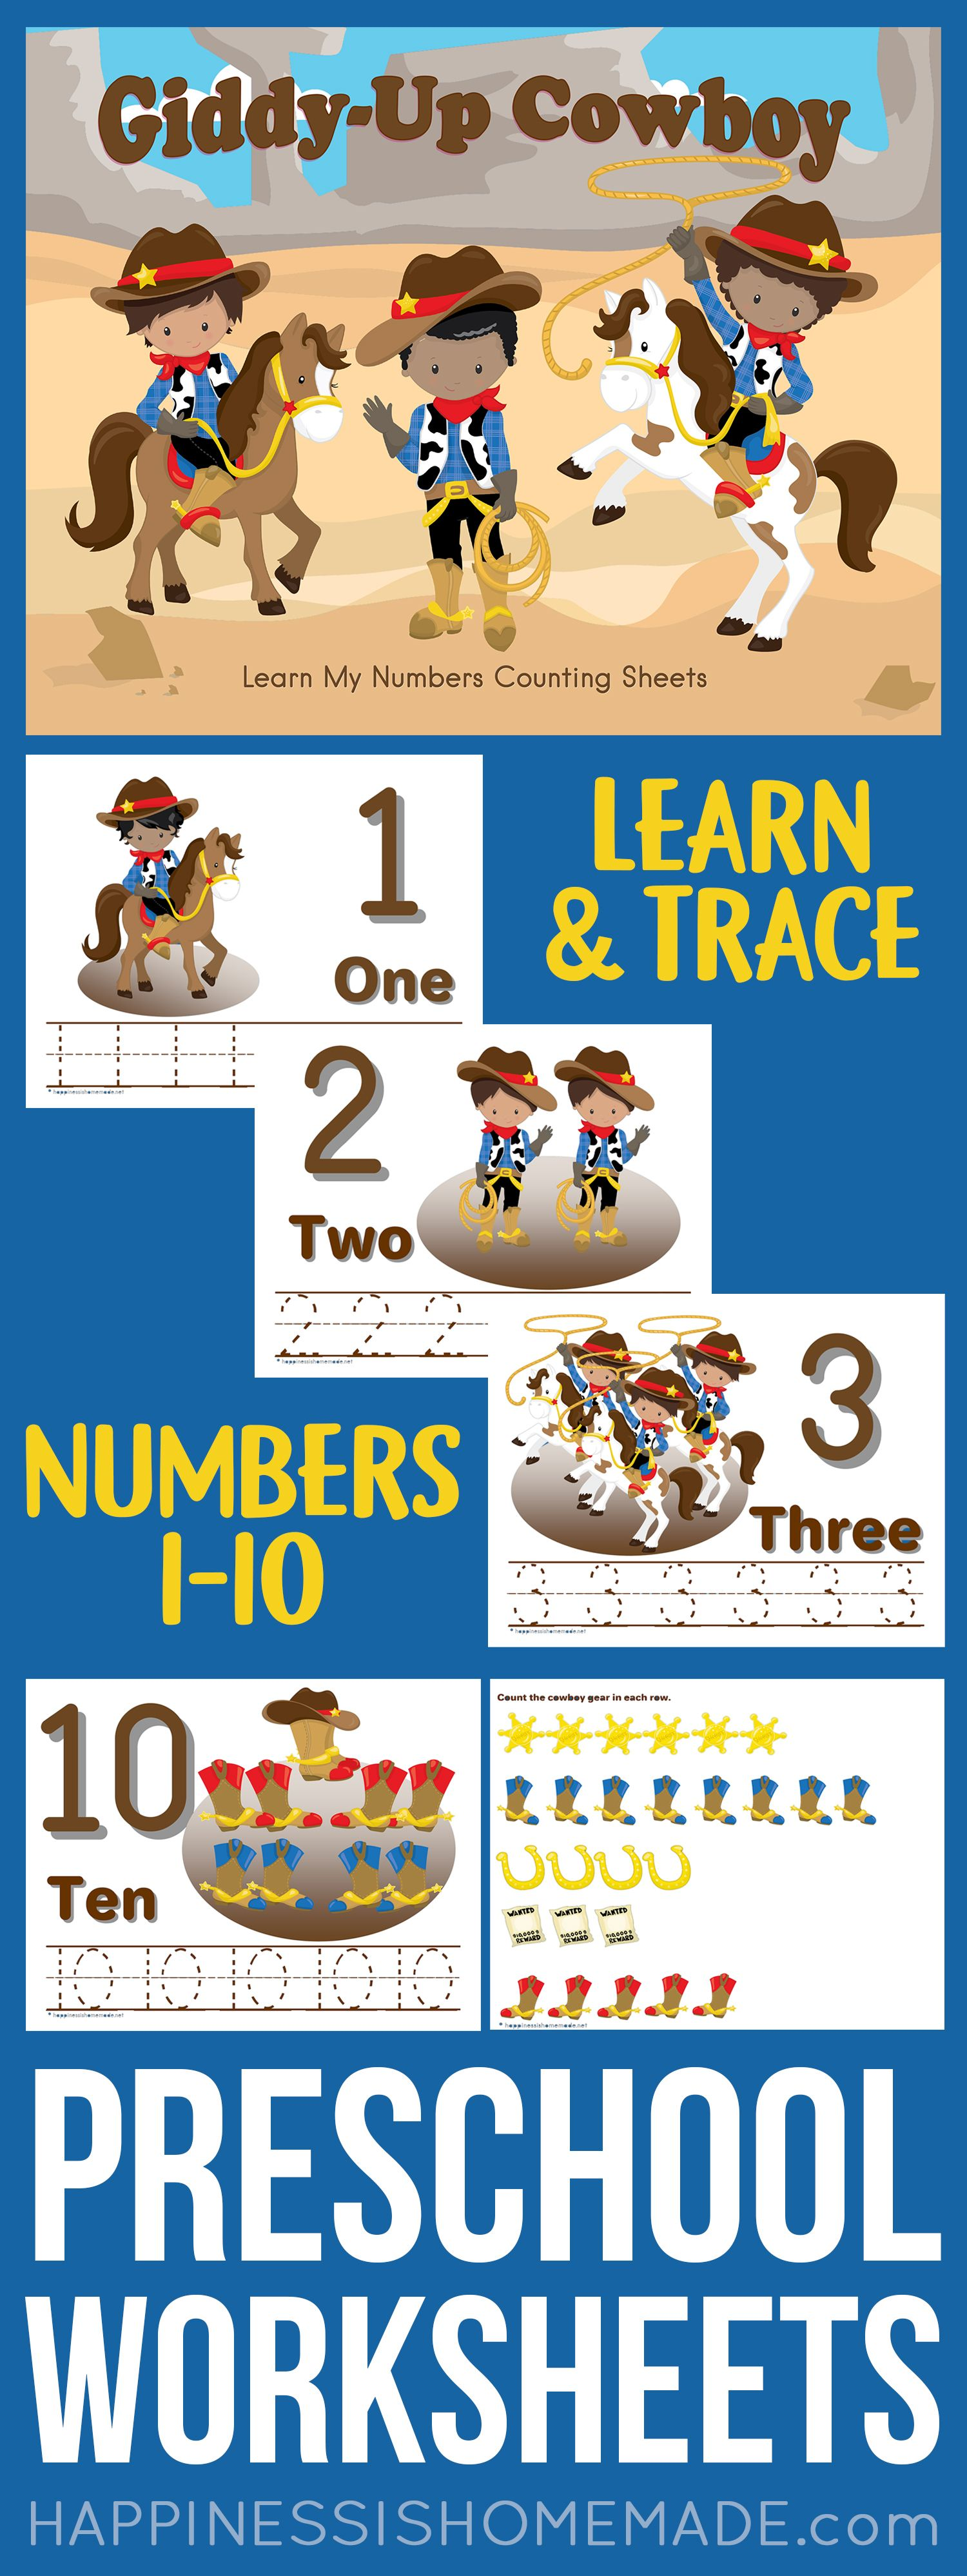 These Cute Free Printable Preschool Worksheets Are A Great